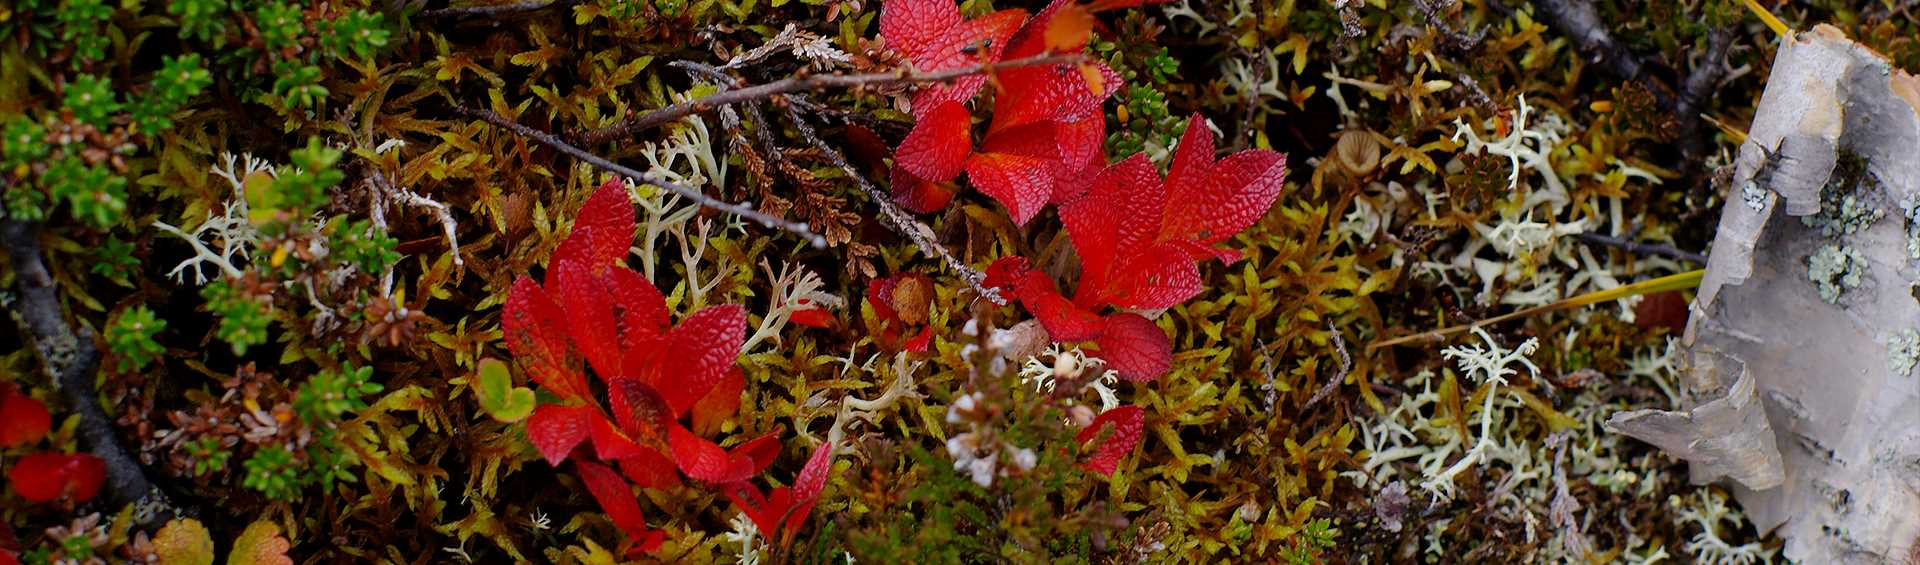 Mountain herbs and plants with autumn colours